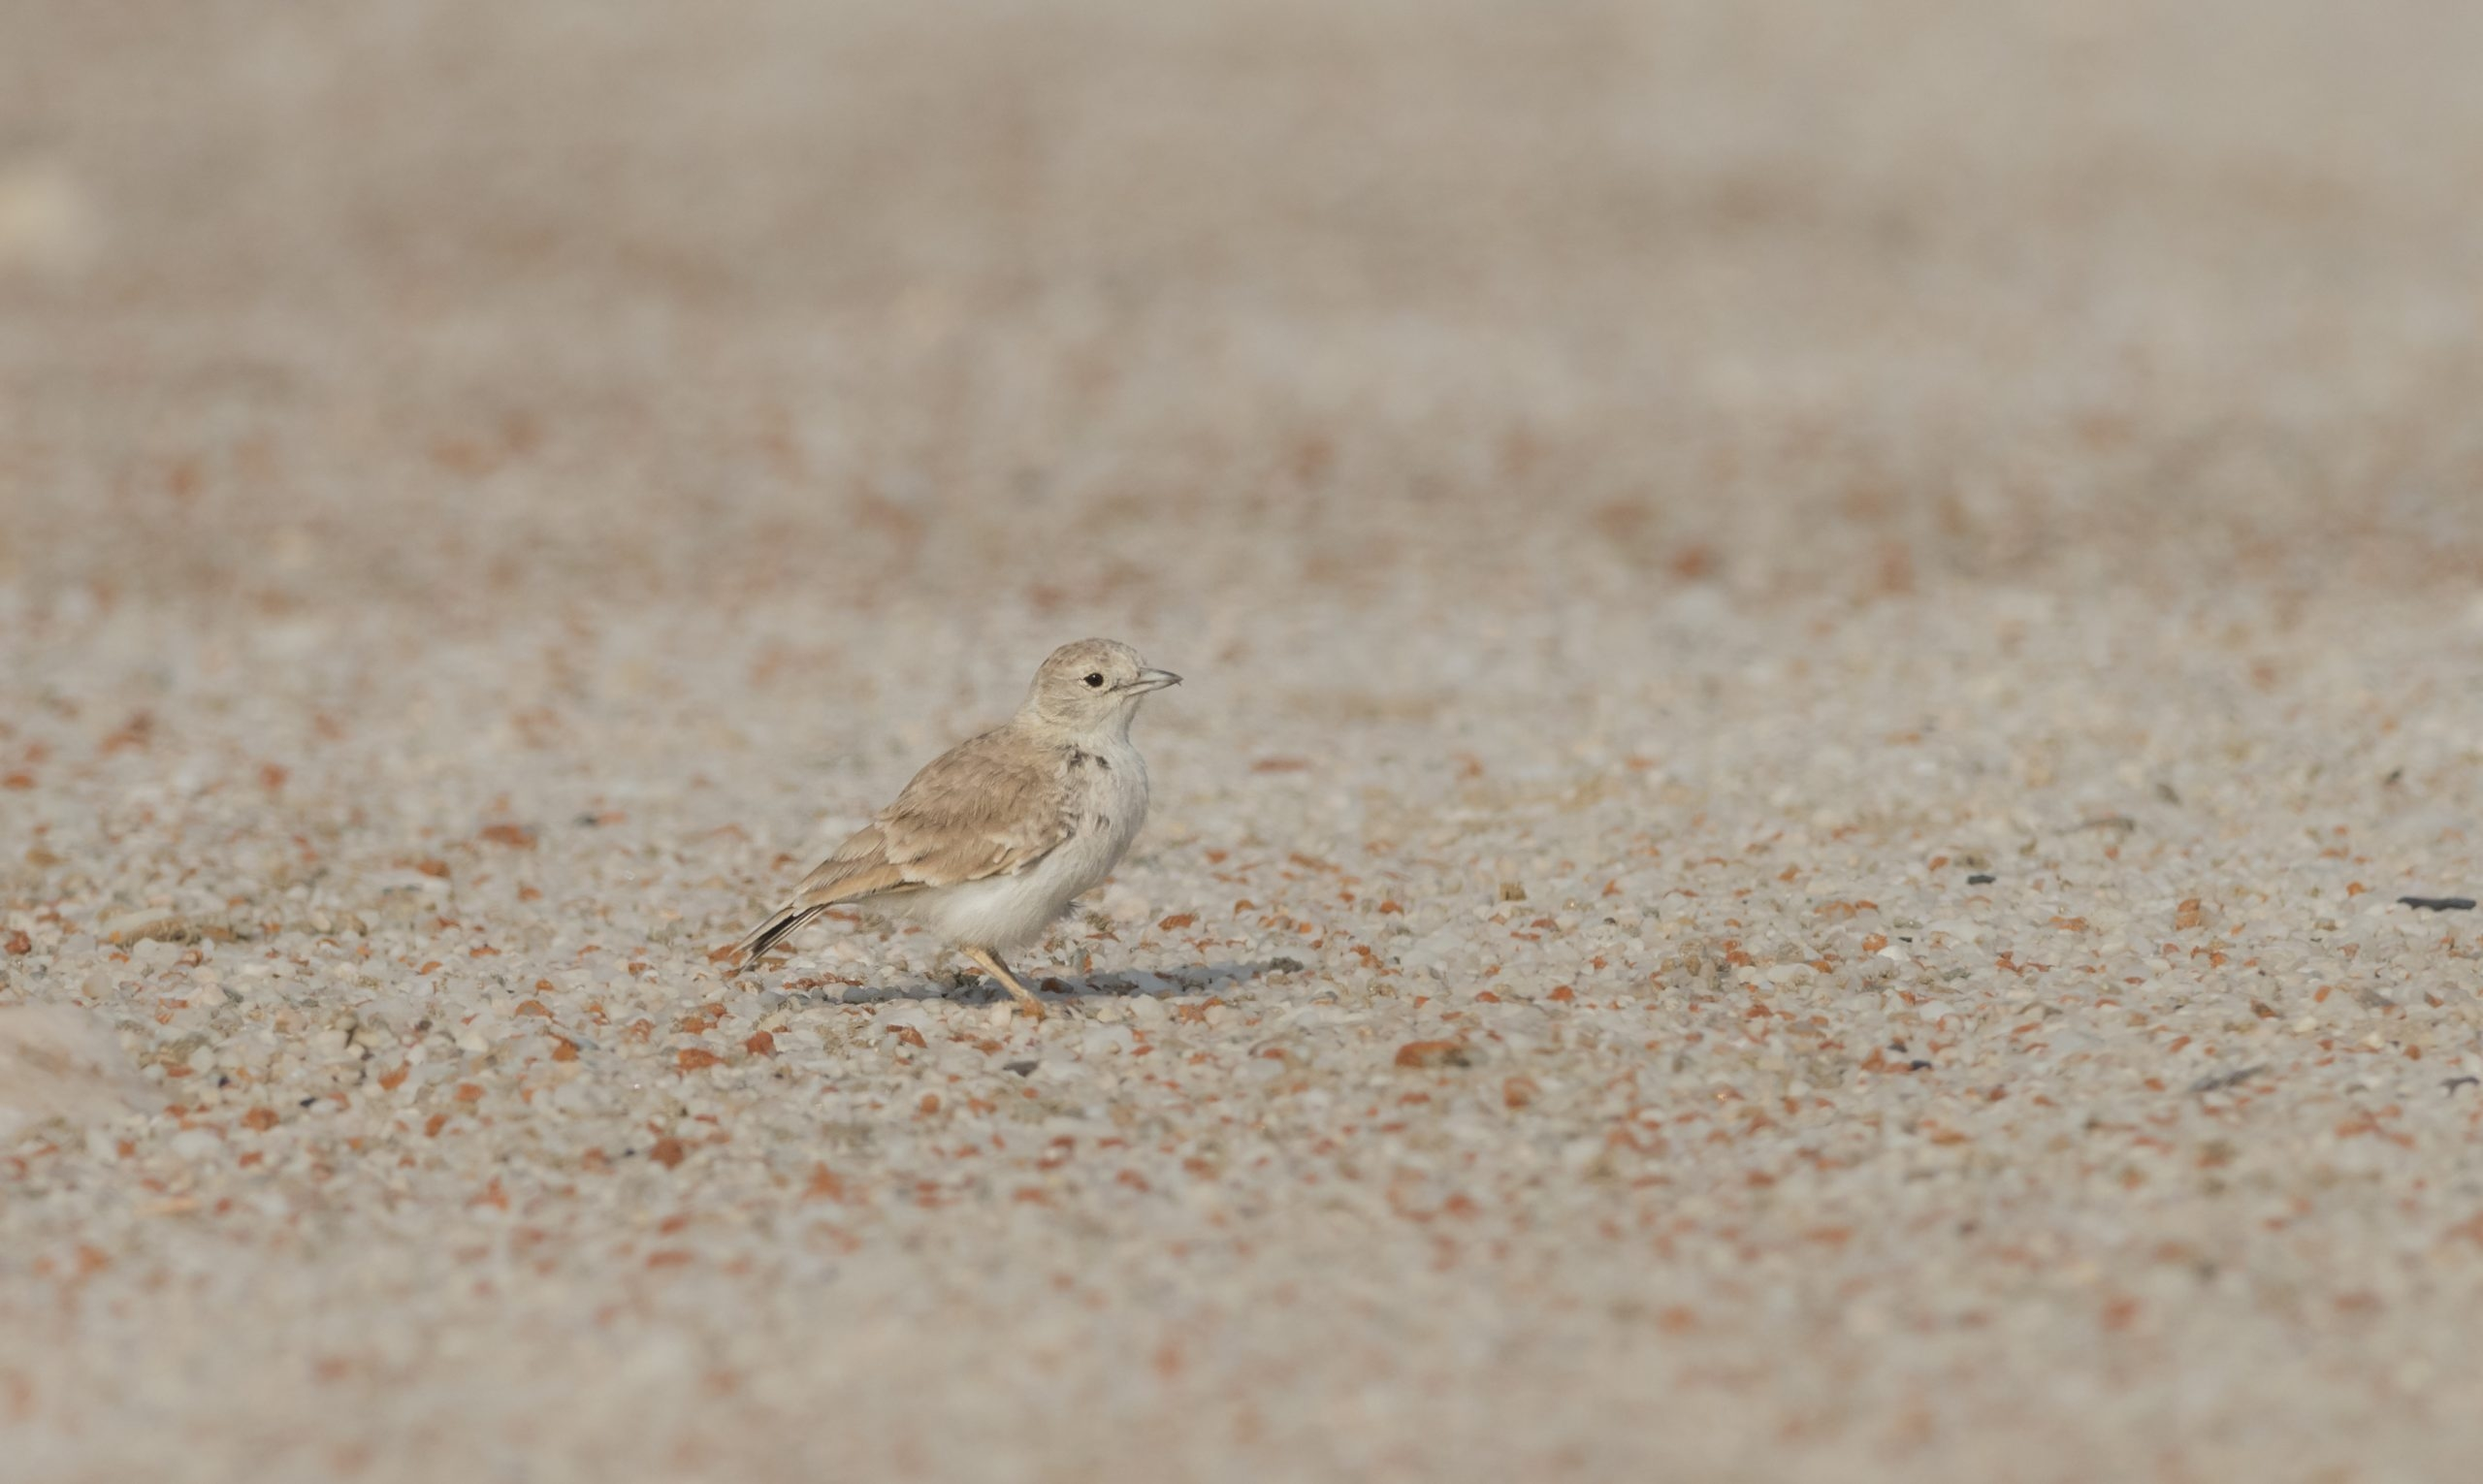 Our Namibia birding tours and desert birding day tours offer many desert specials, such as the near-endemic Gray's Lark, photographed outside Swakopmund.